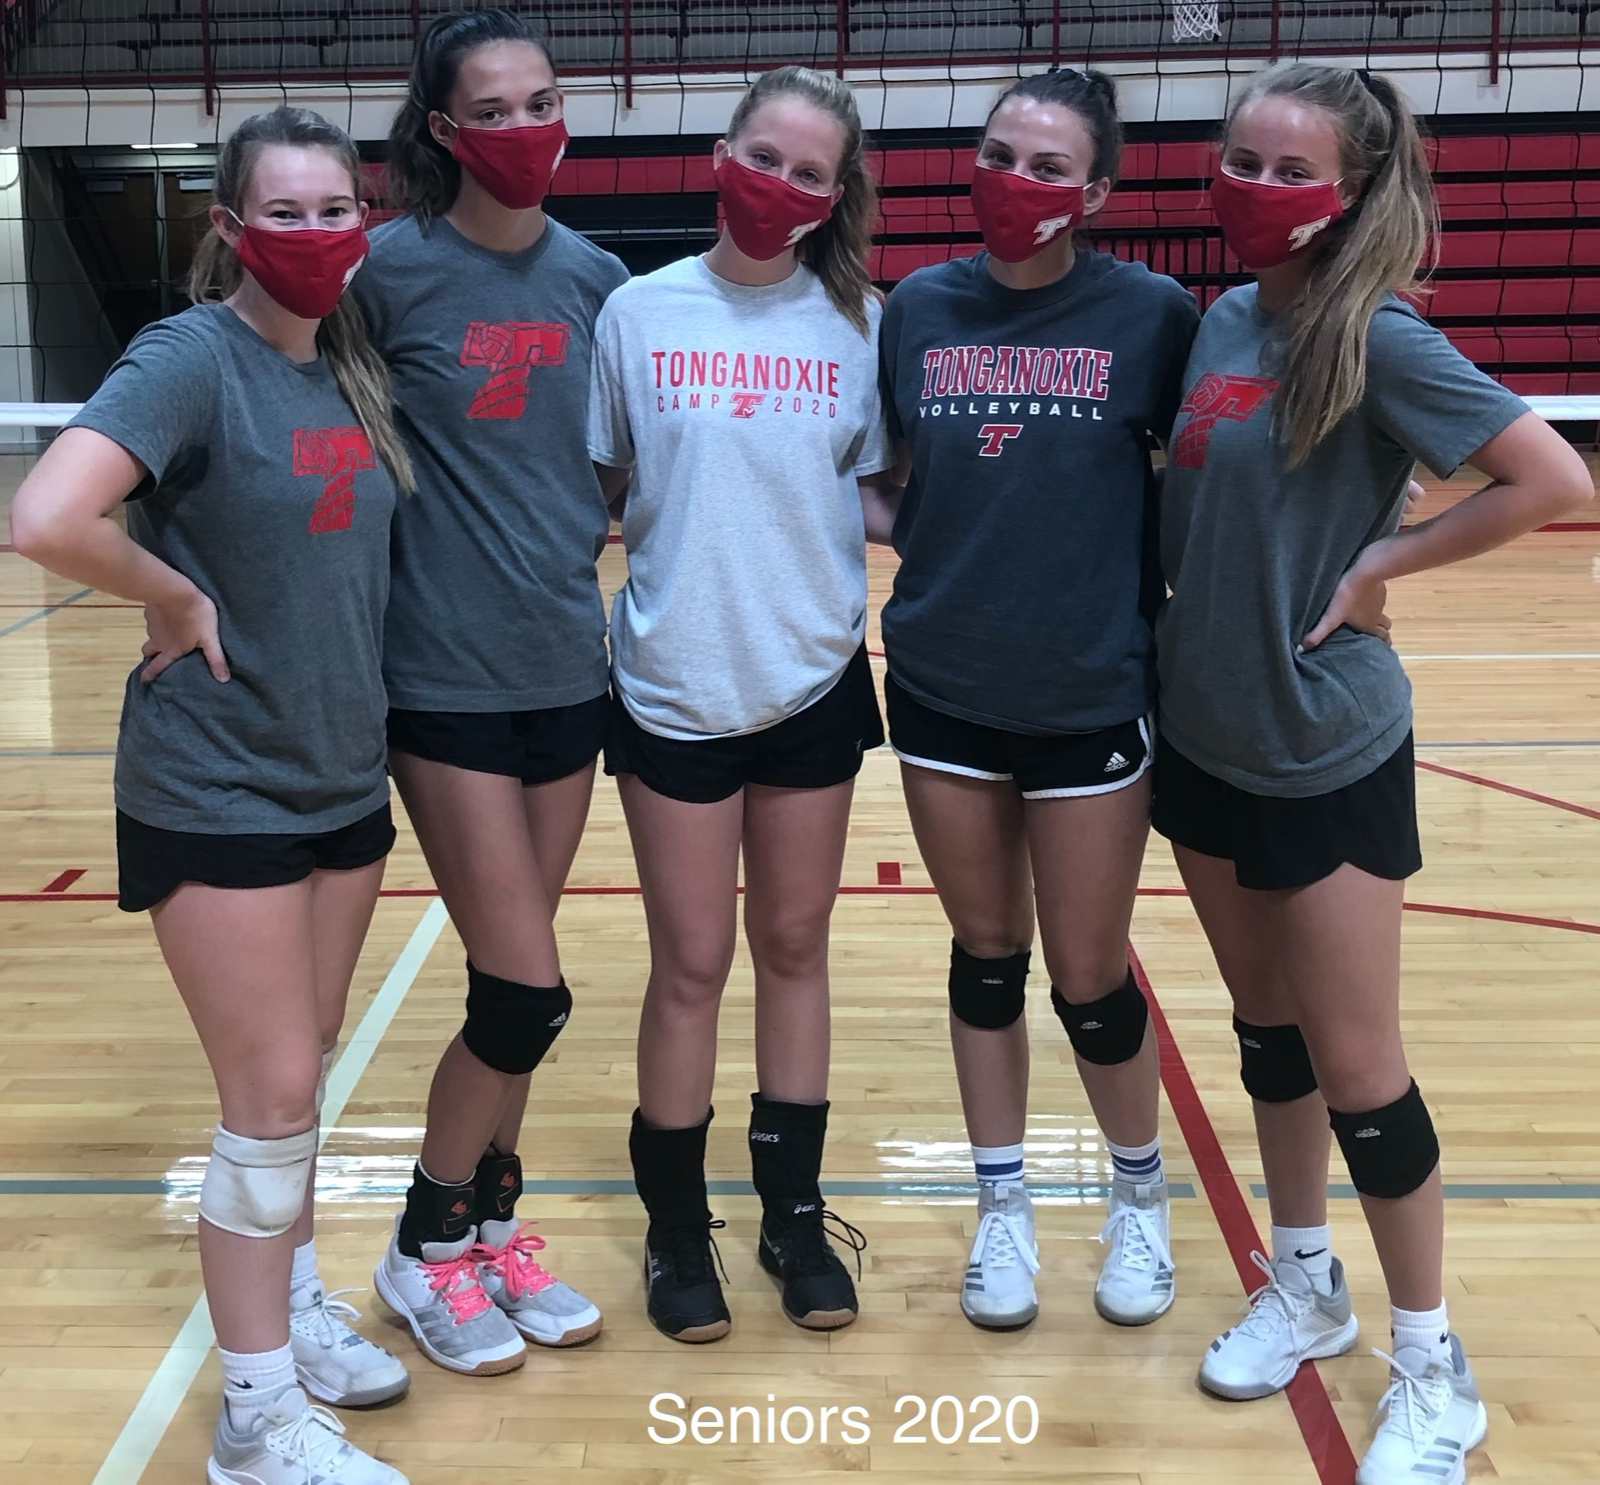 Introducing your 2020 THS Volleyball Team Members